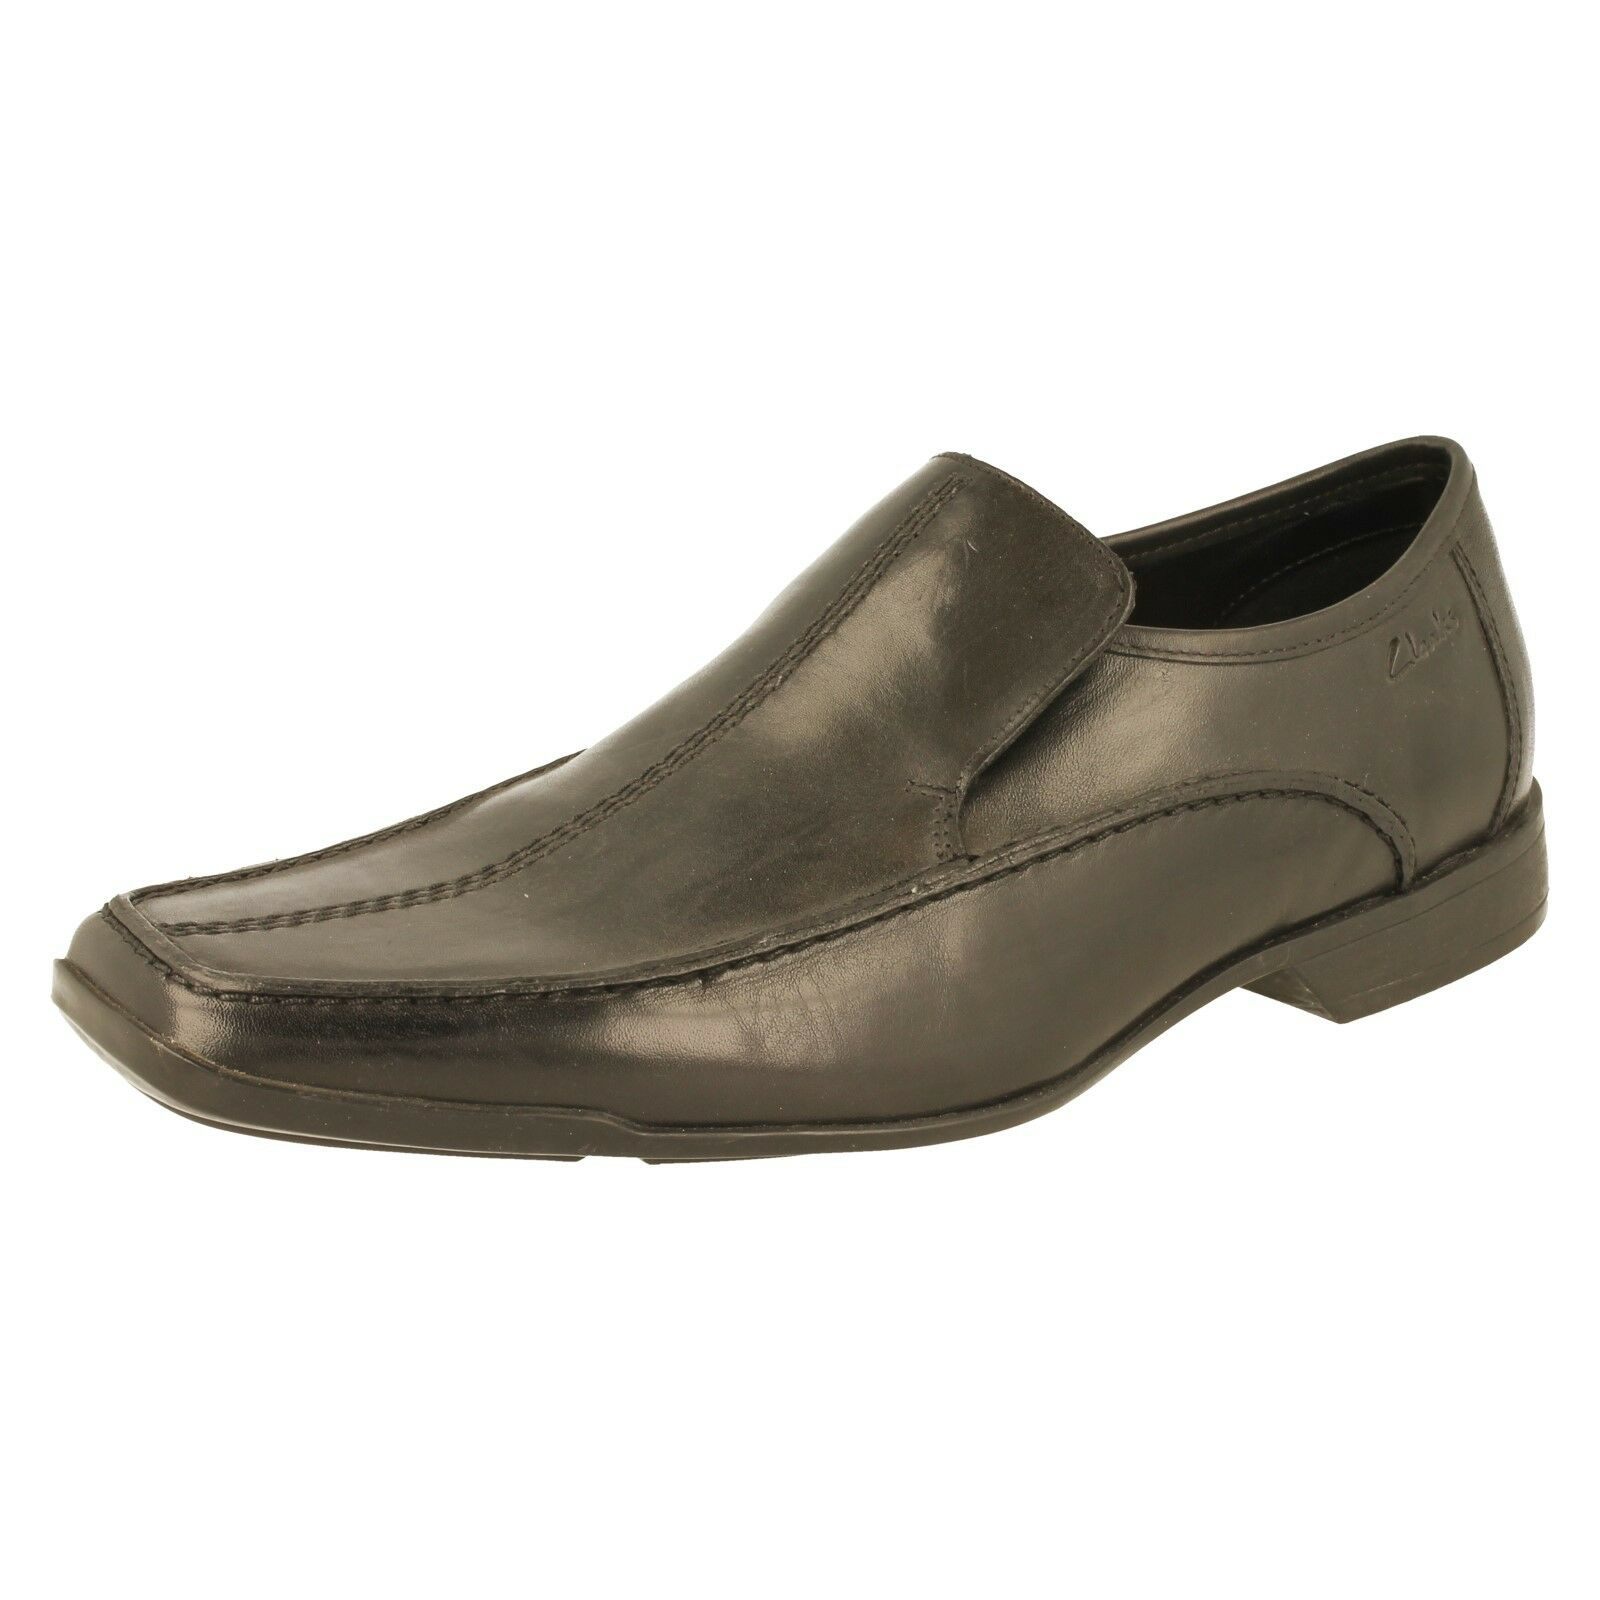 Mens Clarks Slip On Shoes Watch - Balistic Watch Shoes be4fa9